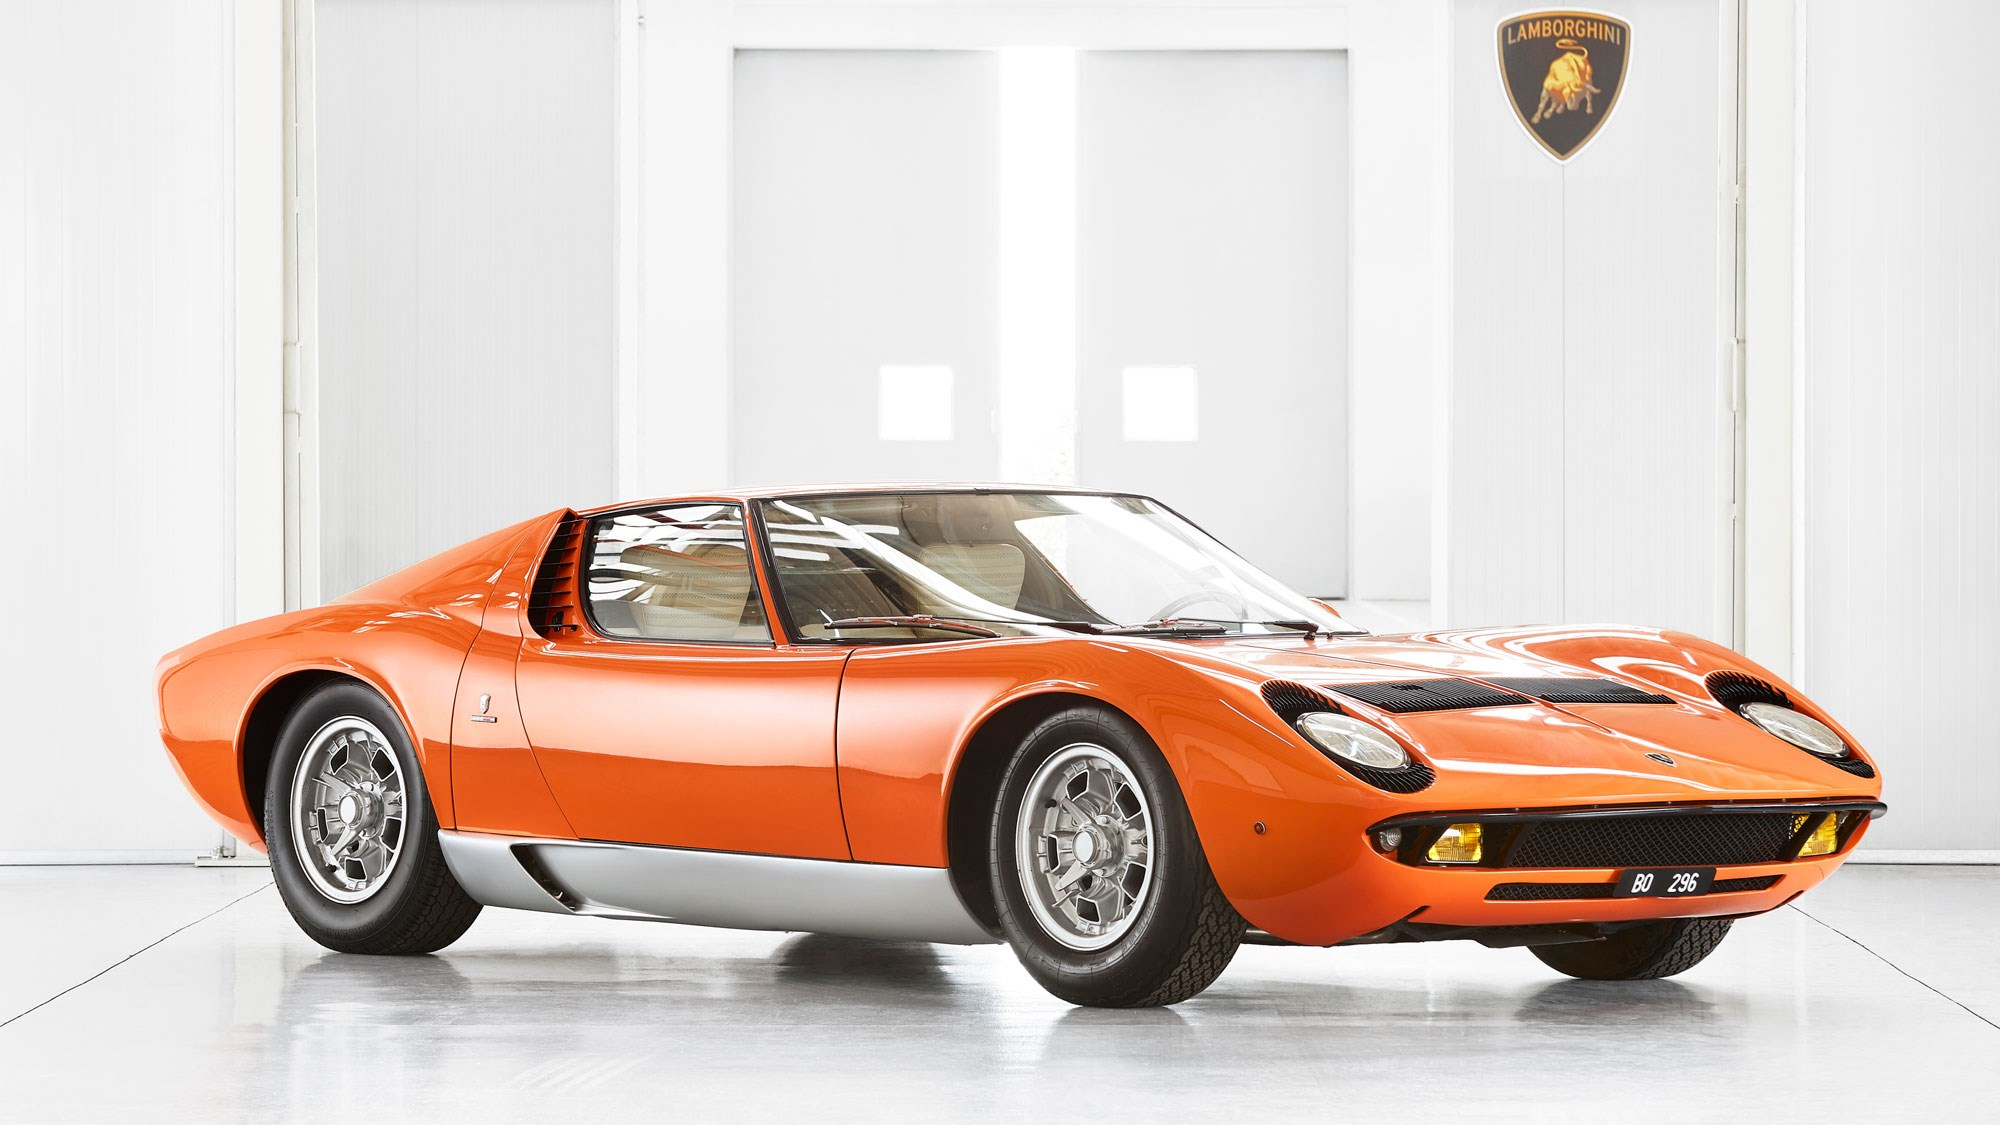 Lamborghini Miura Italian Job Chassis Found 50 Years On Car Magazine